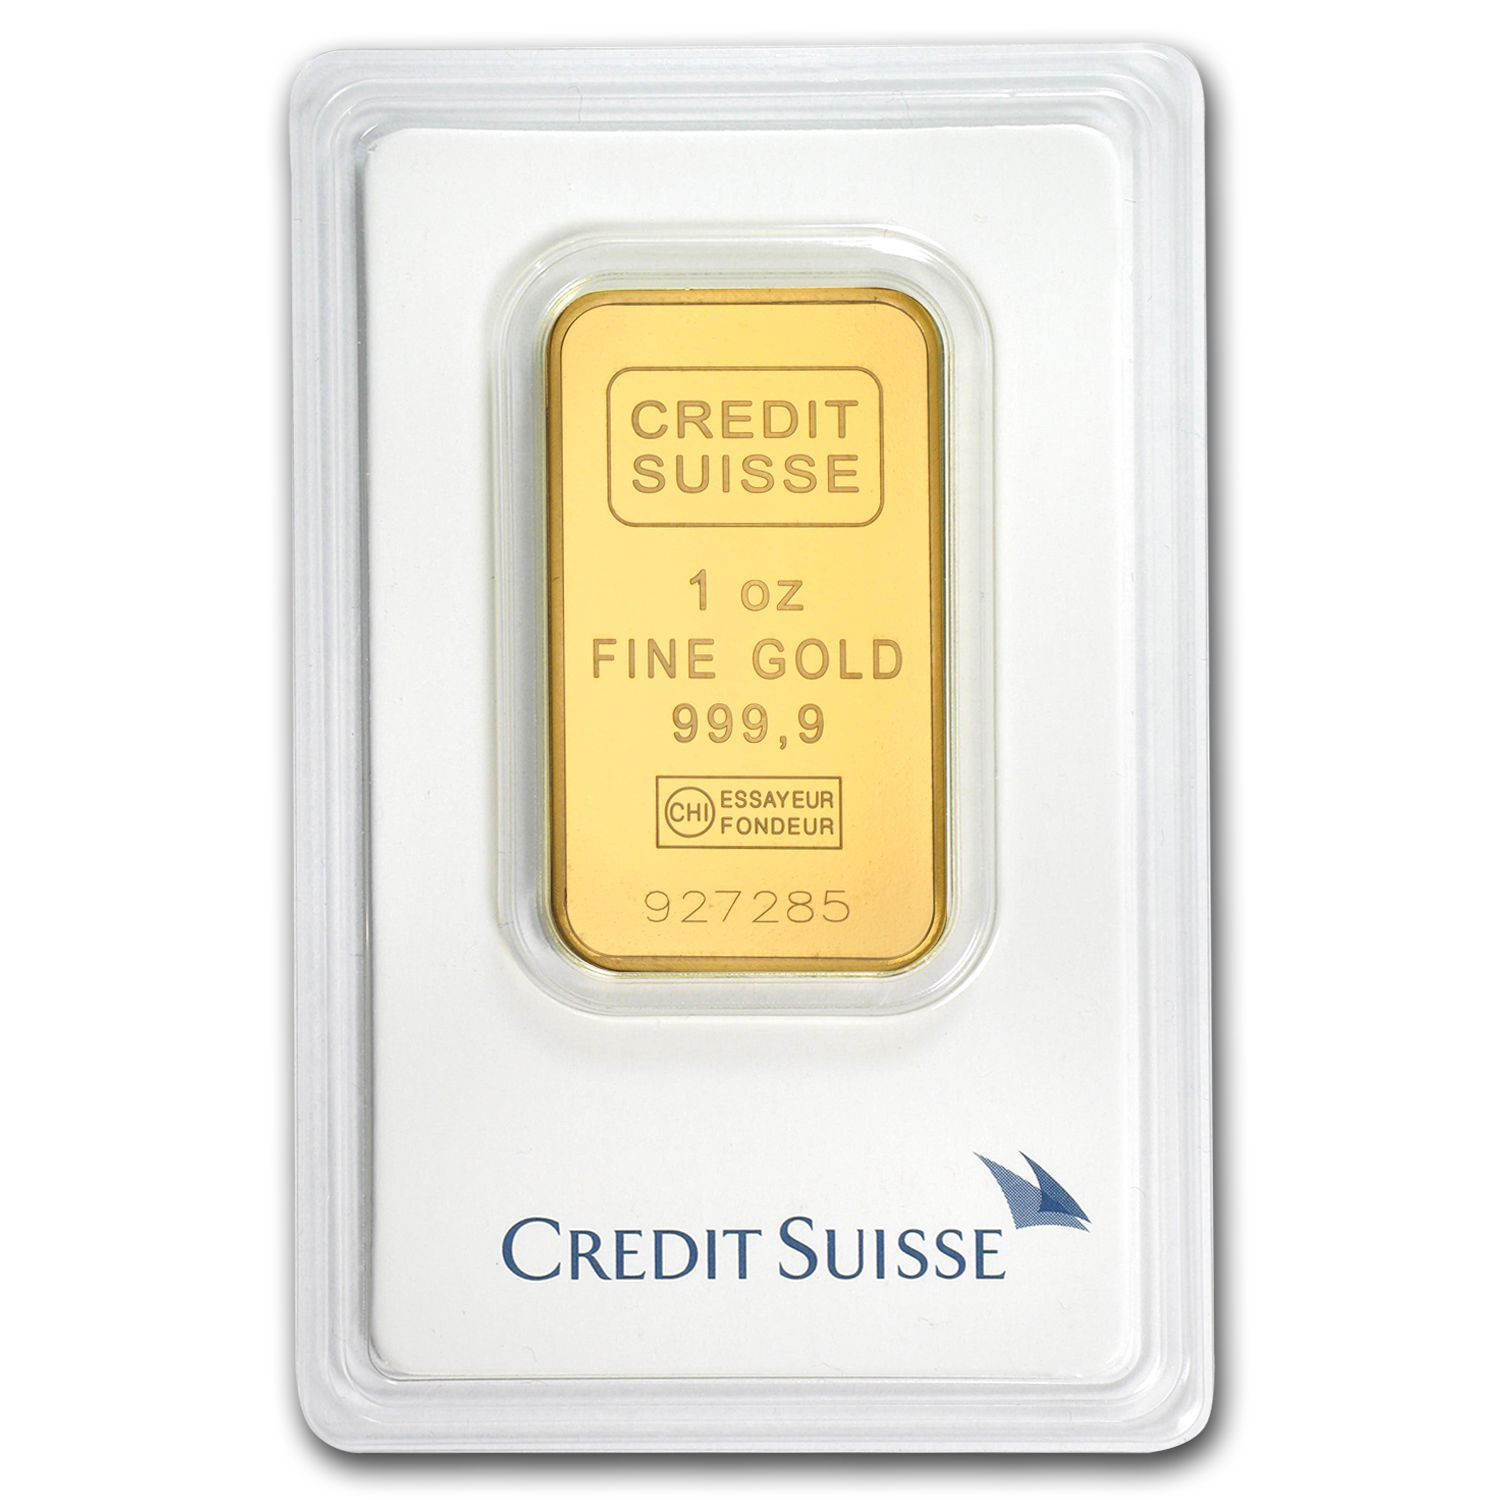 800 311 8902 1 Oz Credit Suisse Gold Bar 9999 Fine In Assay Card Product Description Protect Your Wealth By Inv Credit Suisse Gold Bullion Bars Gold Bullion